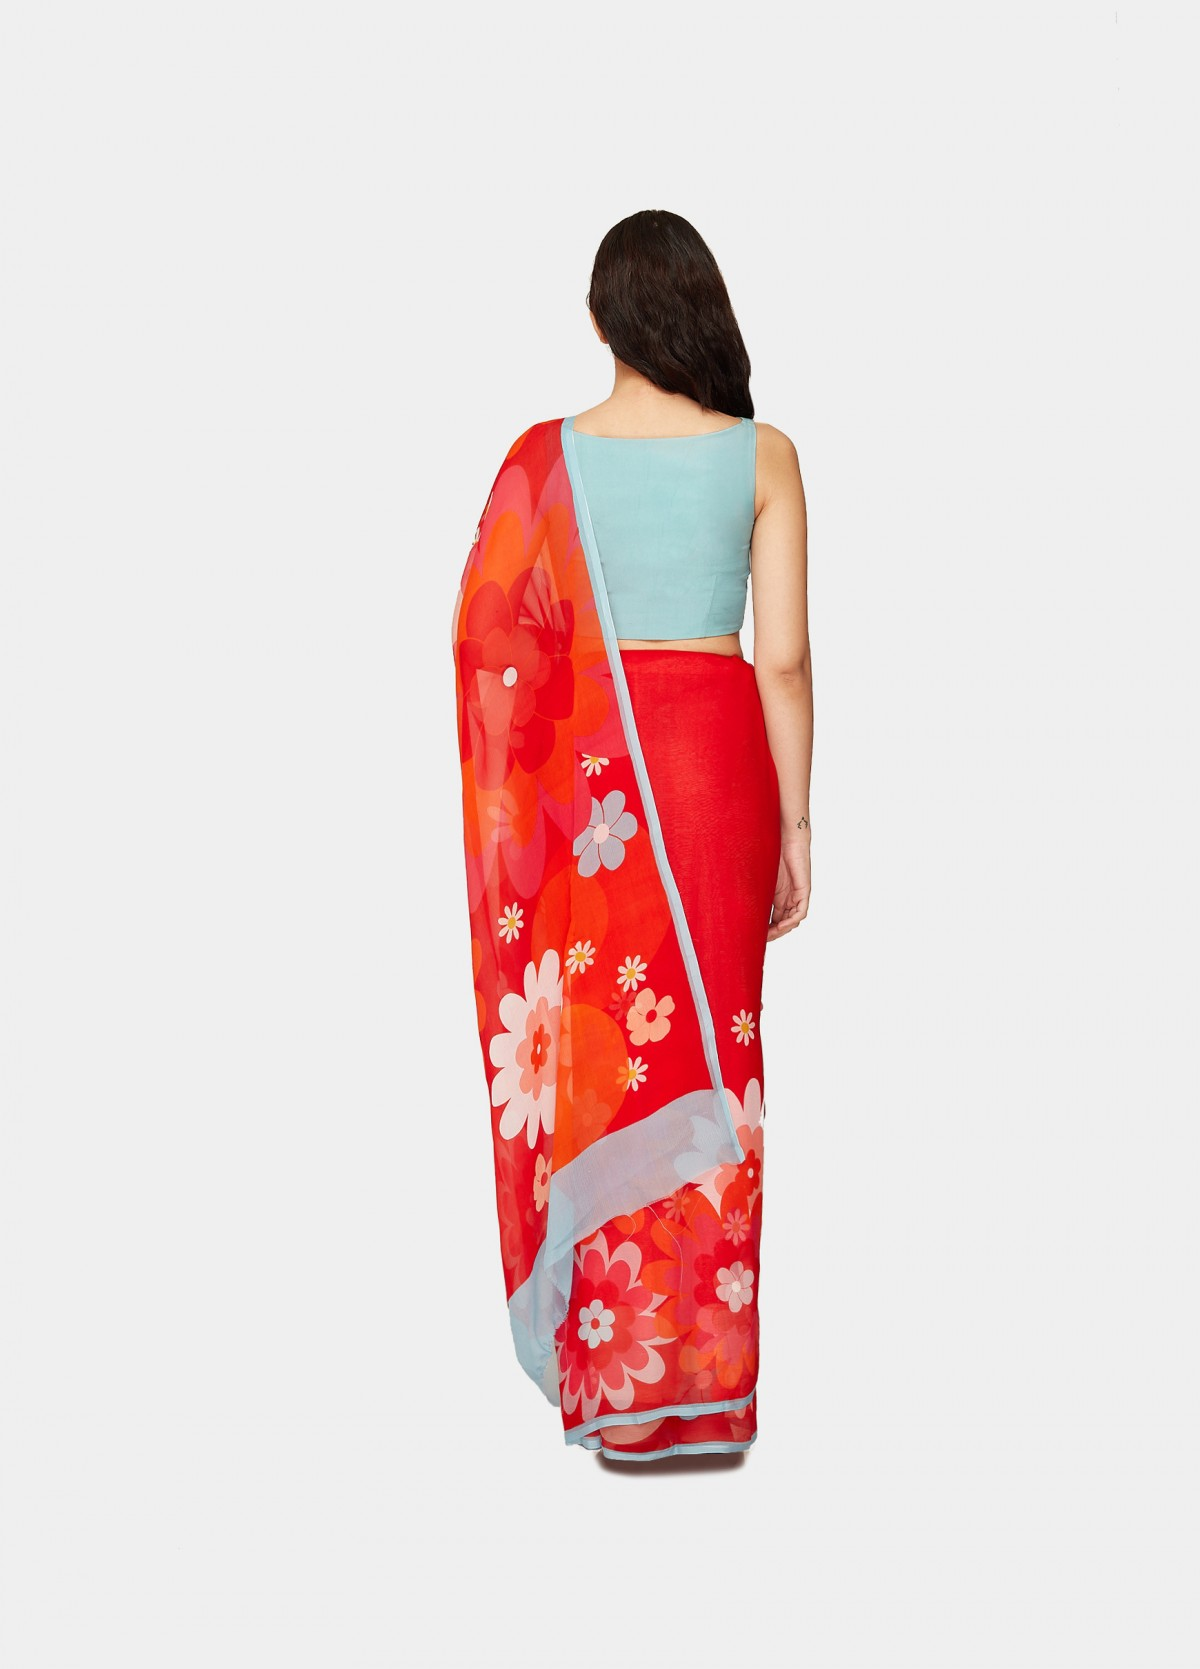 The Valley of Flowers Sari